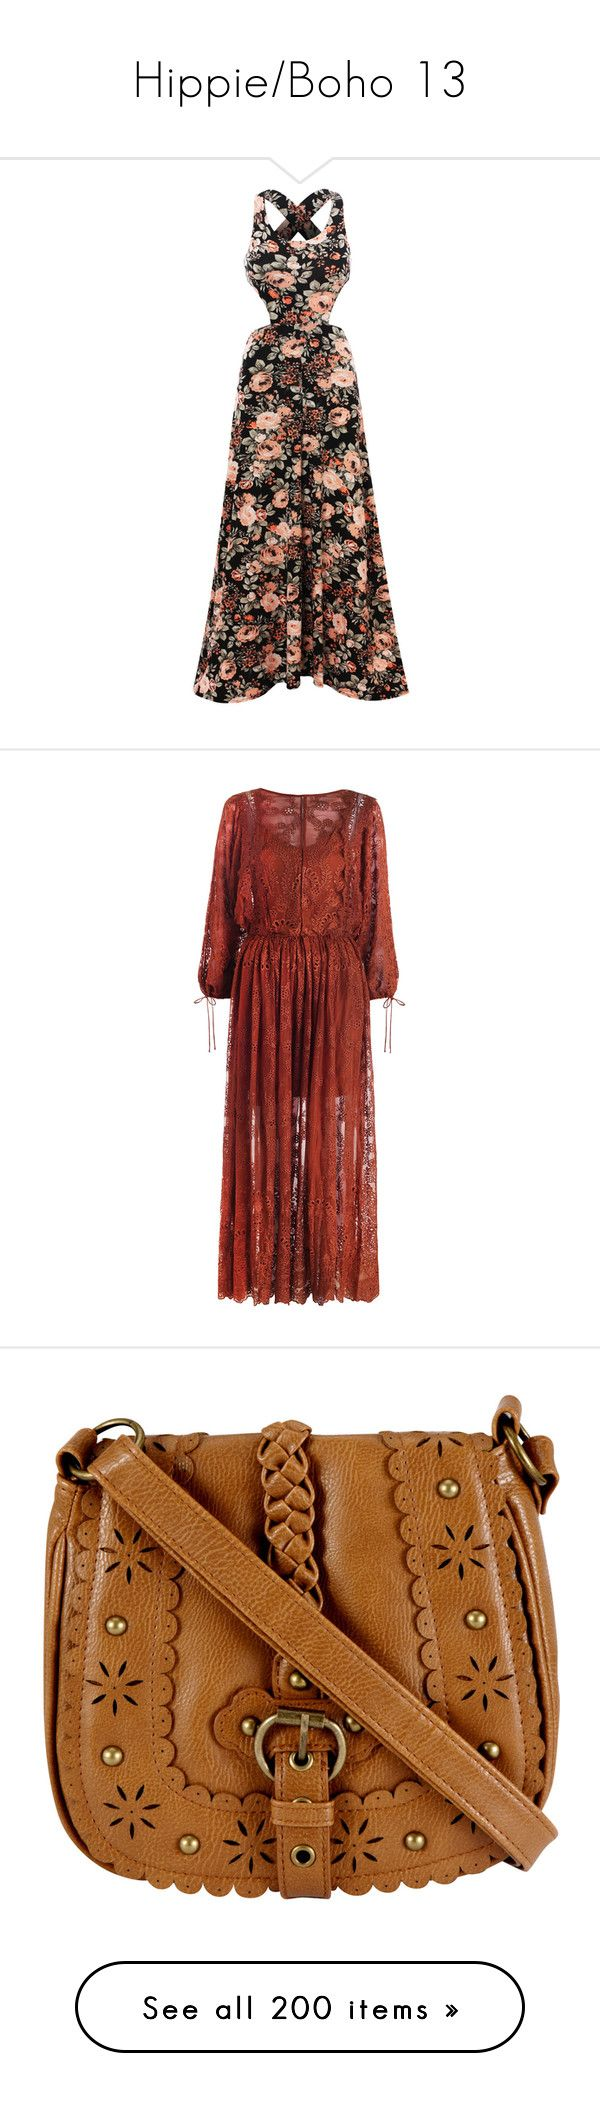 """""""Hippie/Boho 13"""" by ladyequestria ❤ liked on Polyvore featuring dresses, gowns, maxi dress, brown maxi dress, summer dresses, sleeveless maxi dress, cutout maxi dress, long sleeve dress, red dress and embroidery dress"""